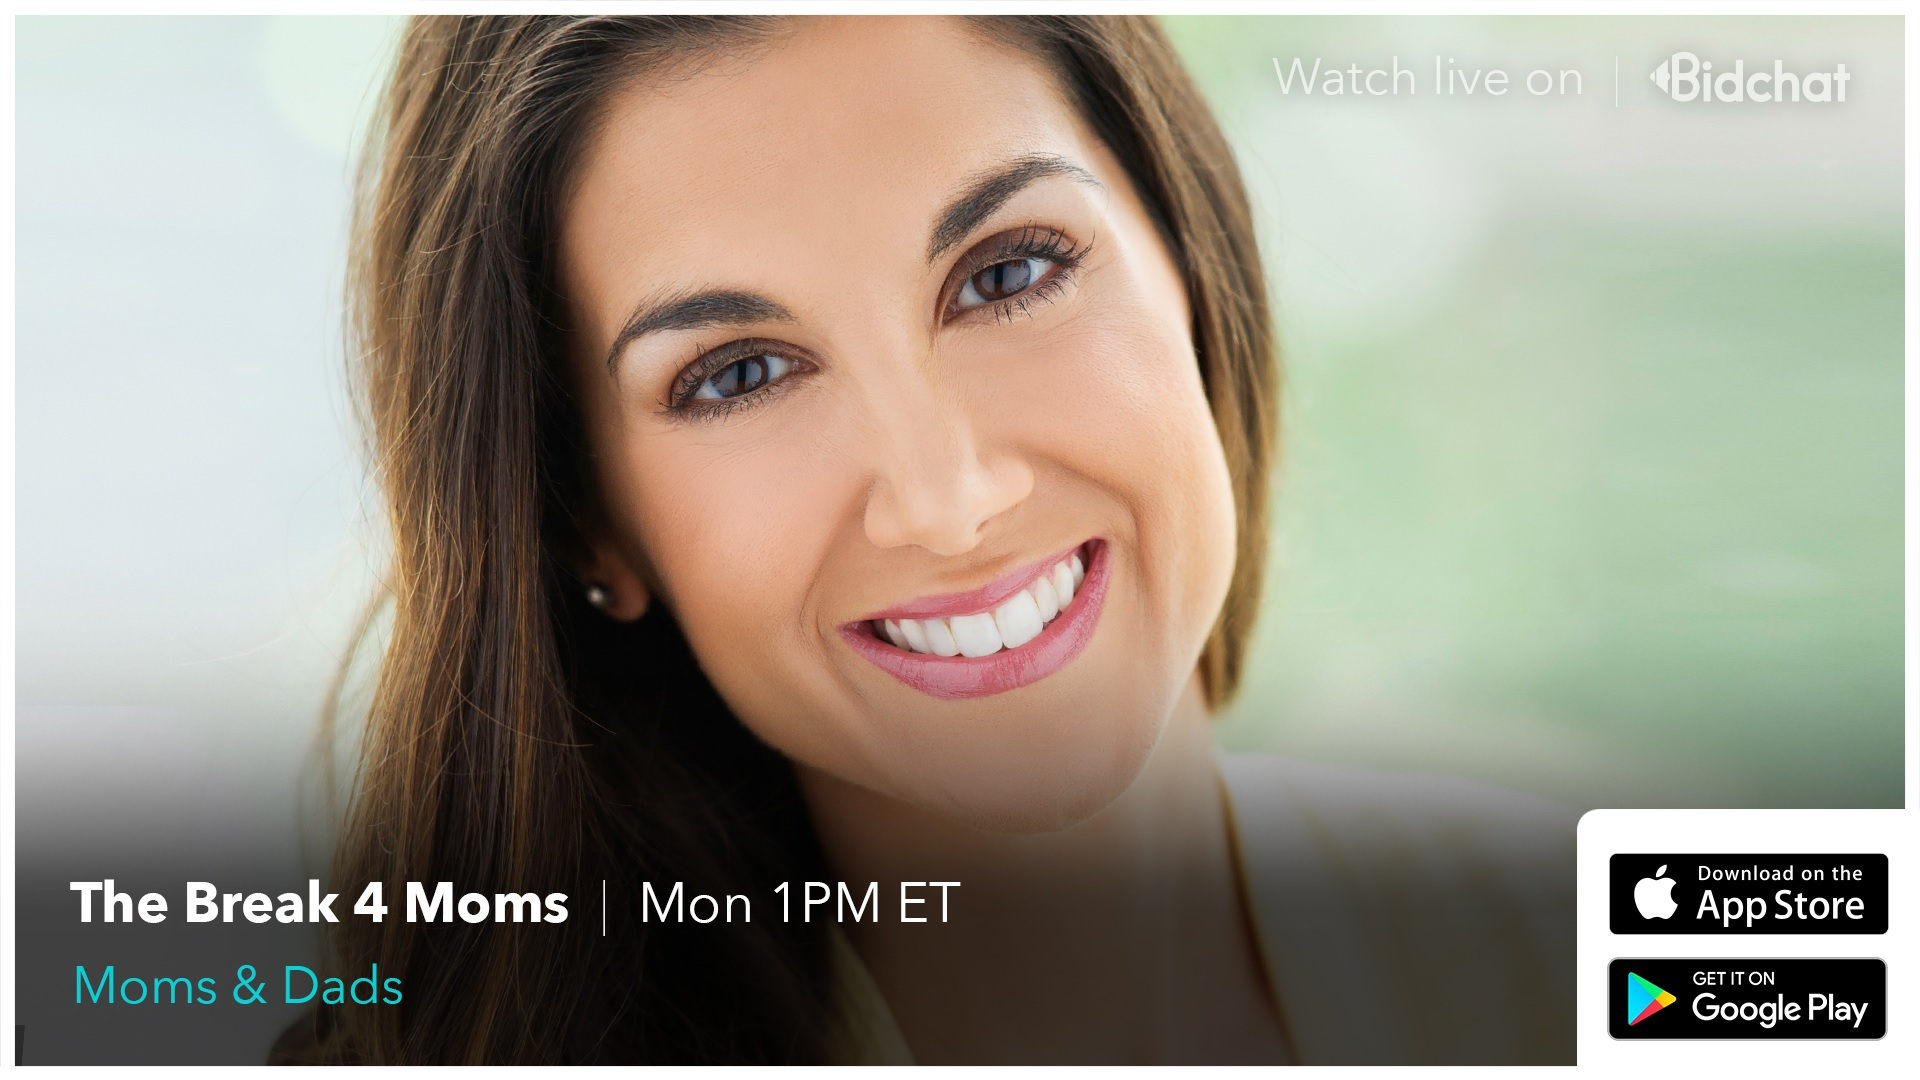 The Break 4 Moms… Will You Be Watching??